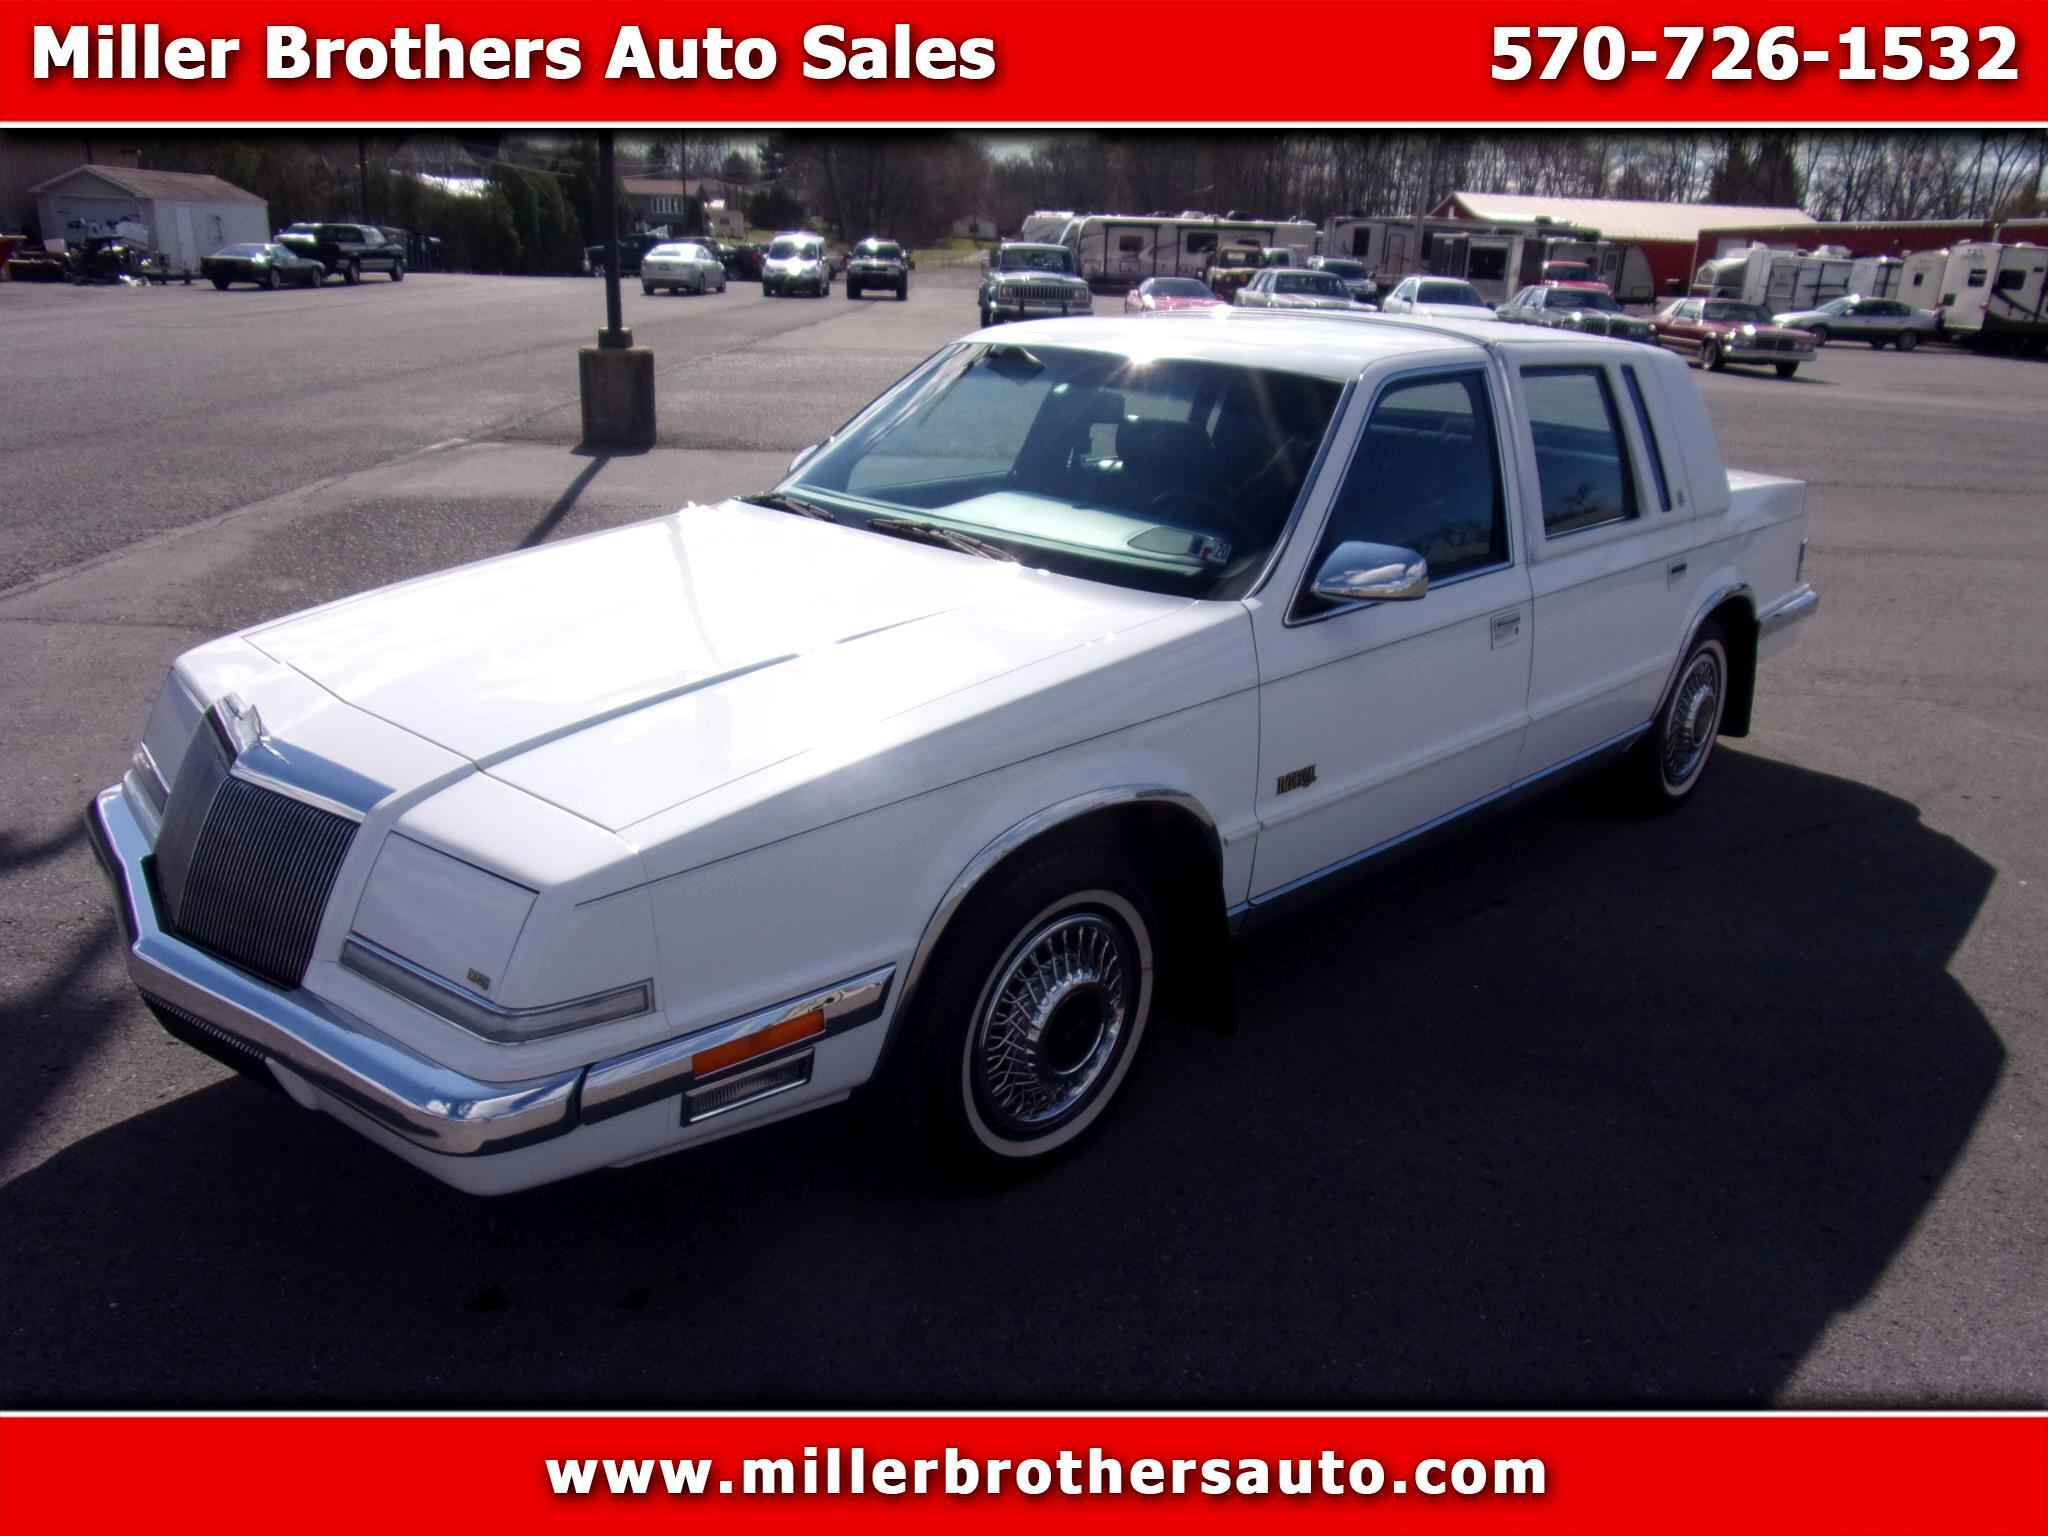 Chrysler Imperial 4dr Sedan 1990